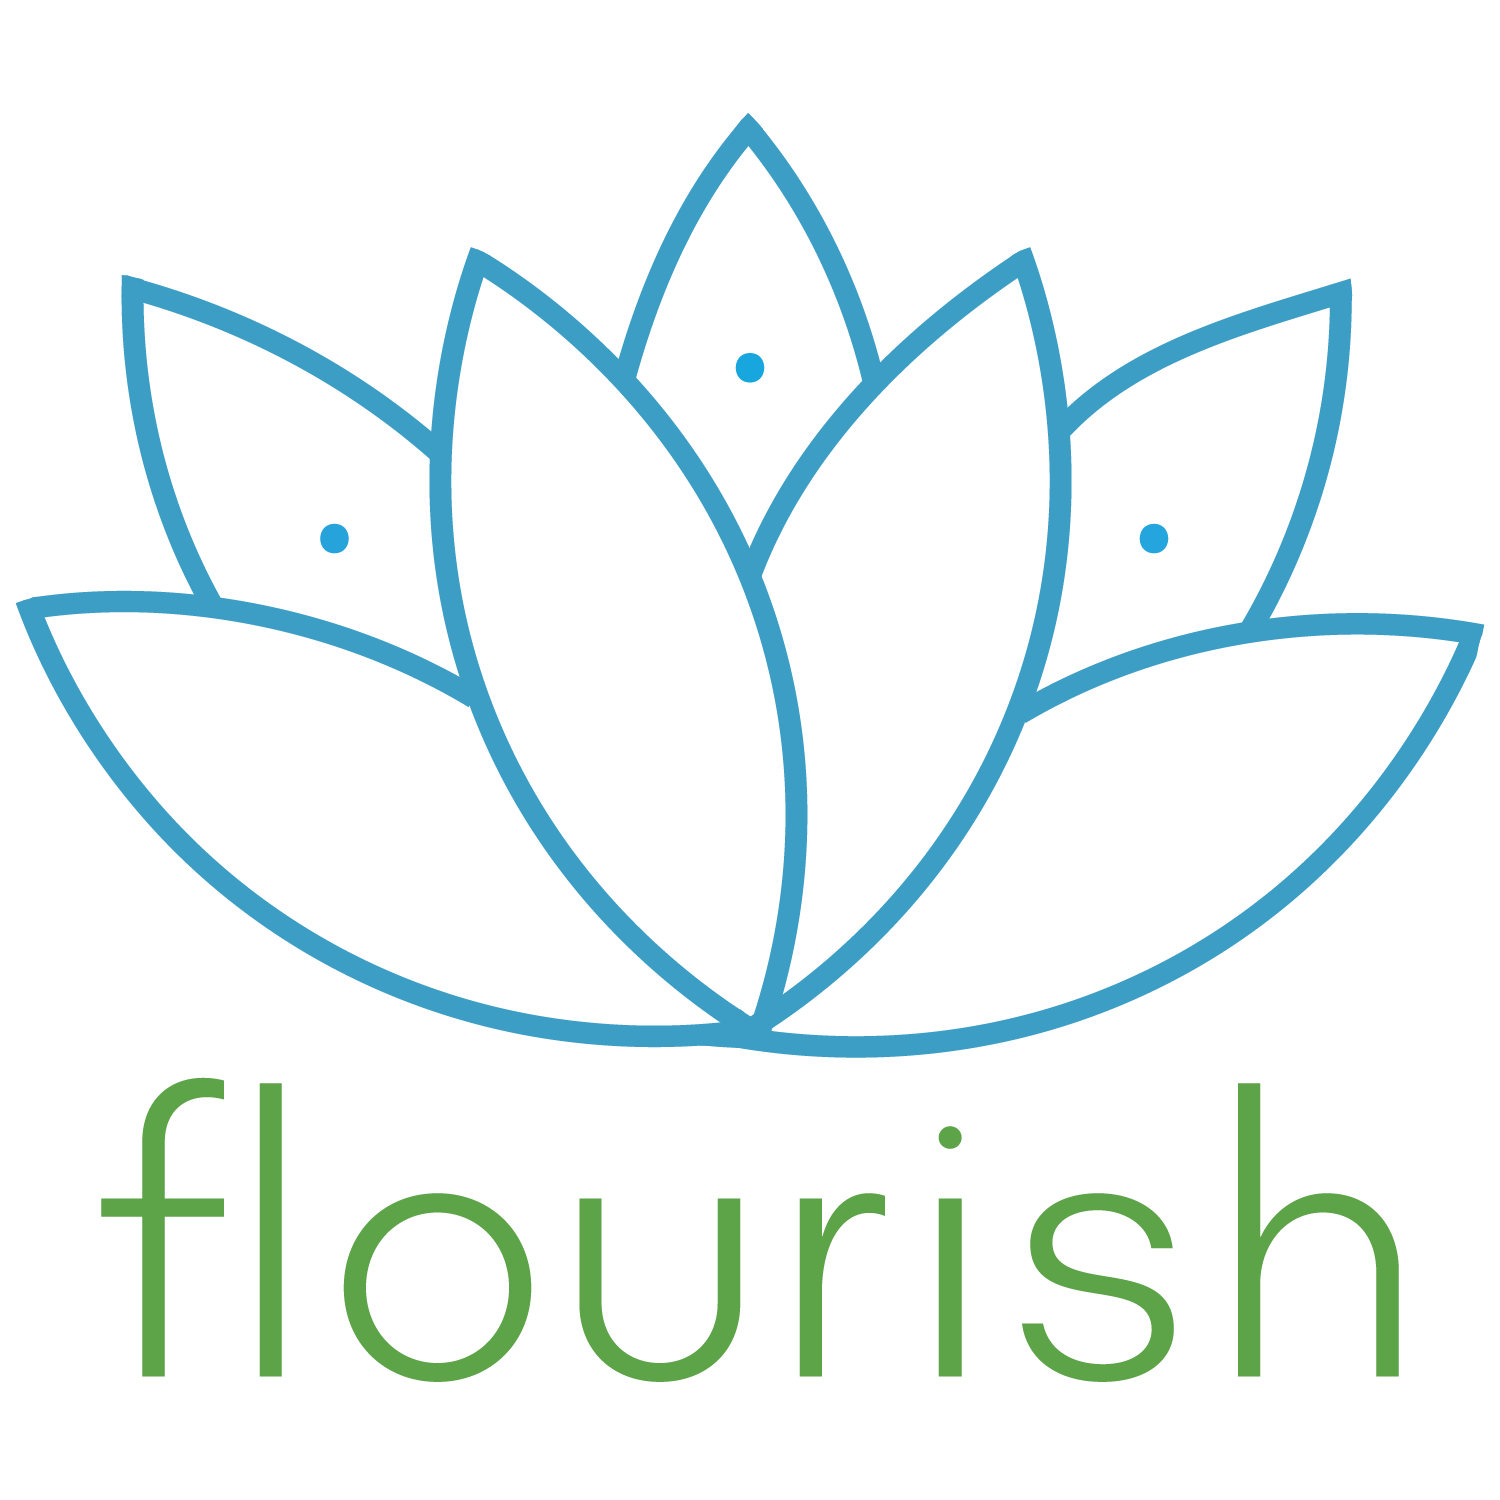 Flourish offers health and wellness coaching, reflexology and adaptive yoga in the Seattle area.